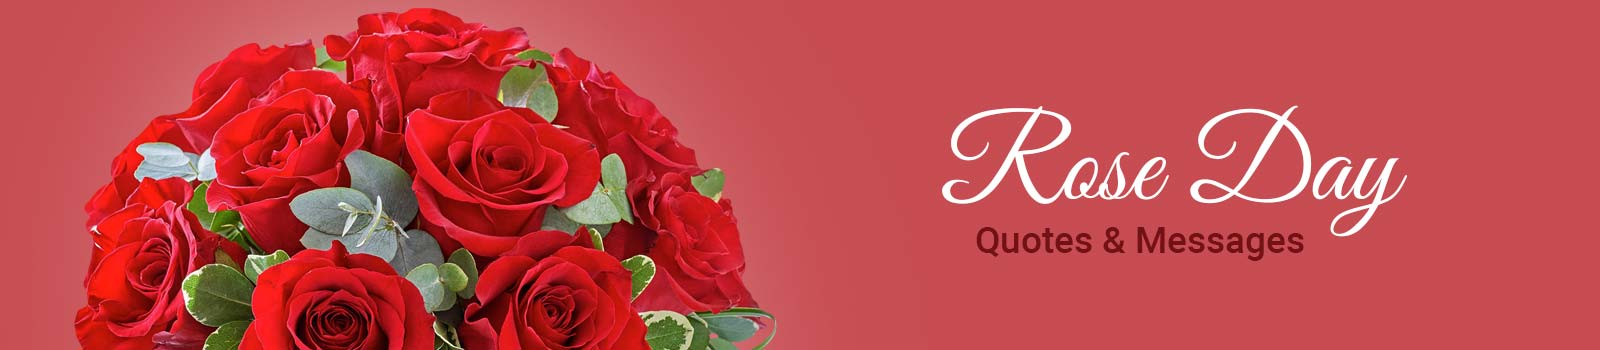 Rose Day Quotes & Messages